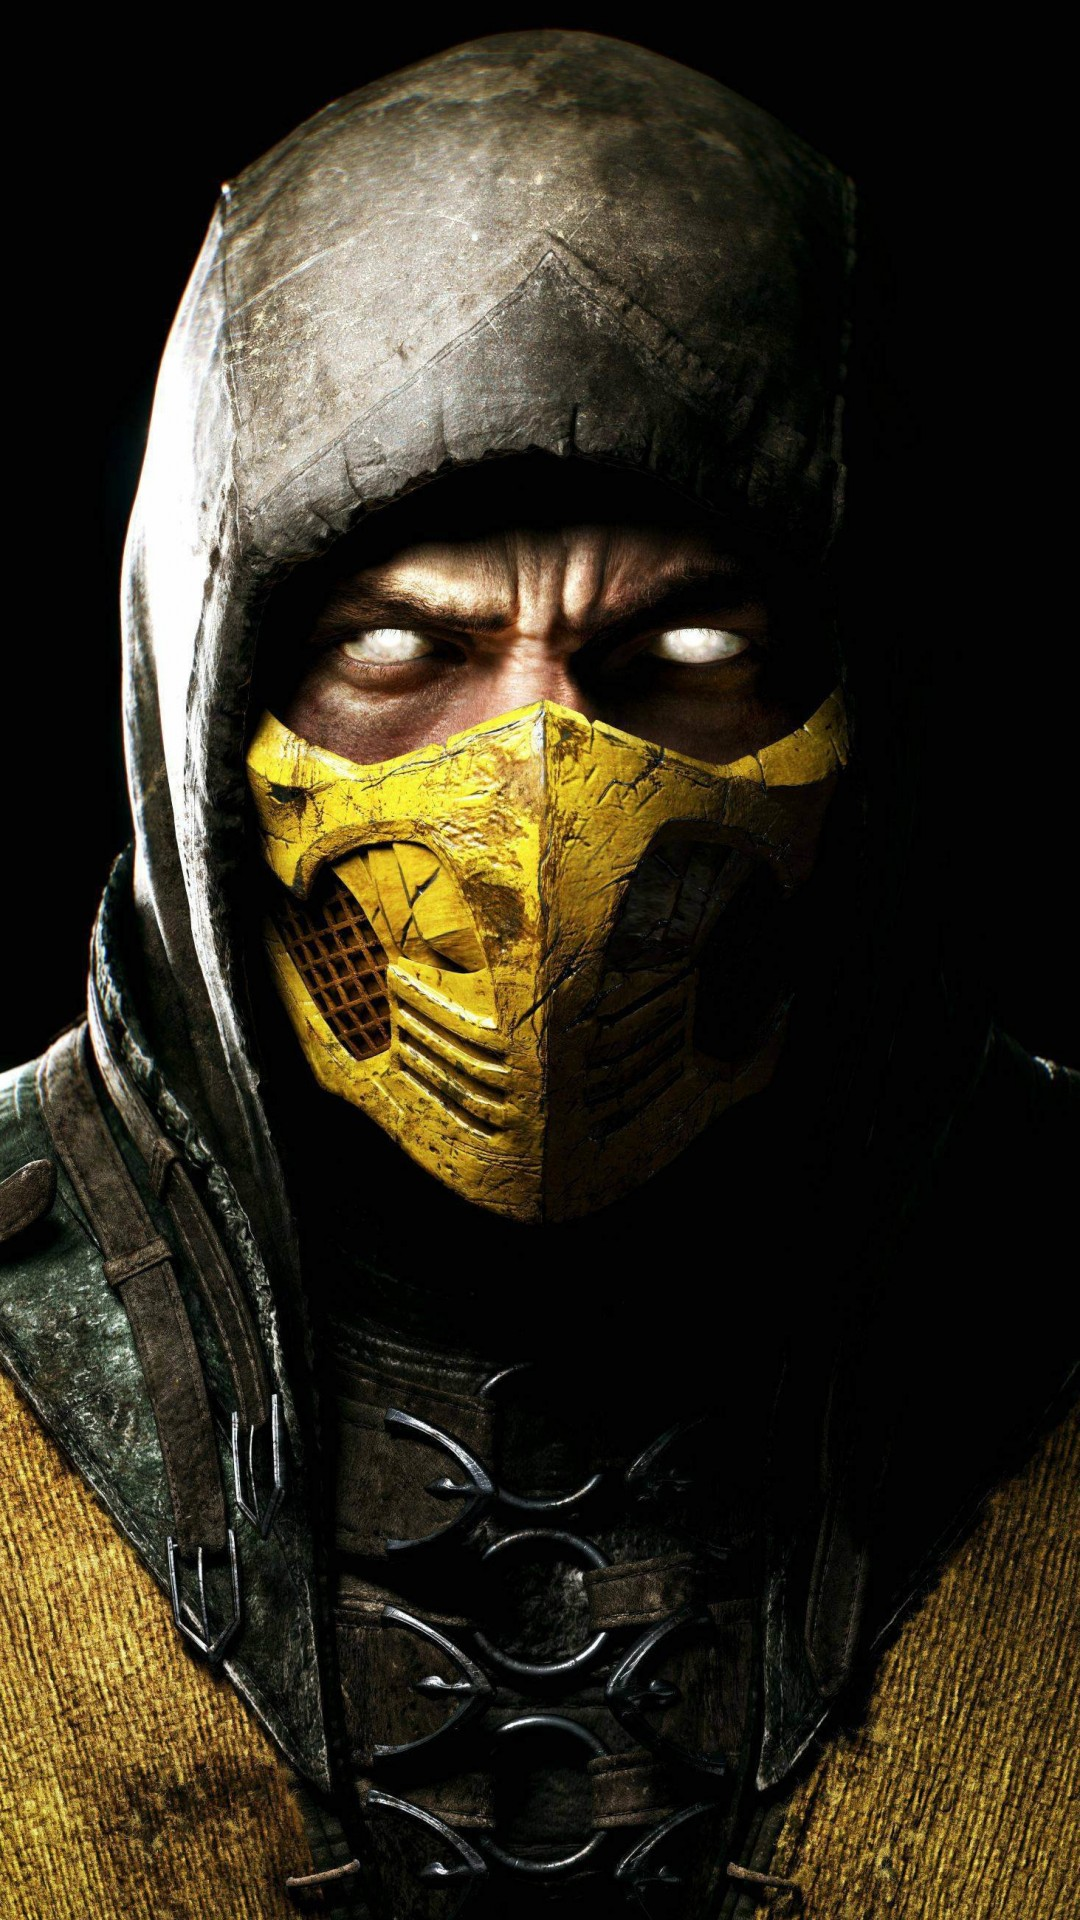 Scorpion Mortal Kombat X Wallpaper for Motorola Moto X